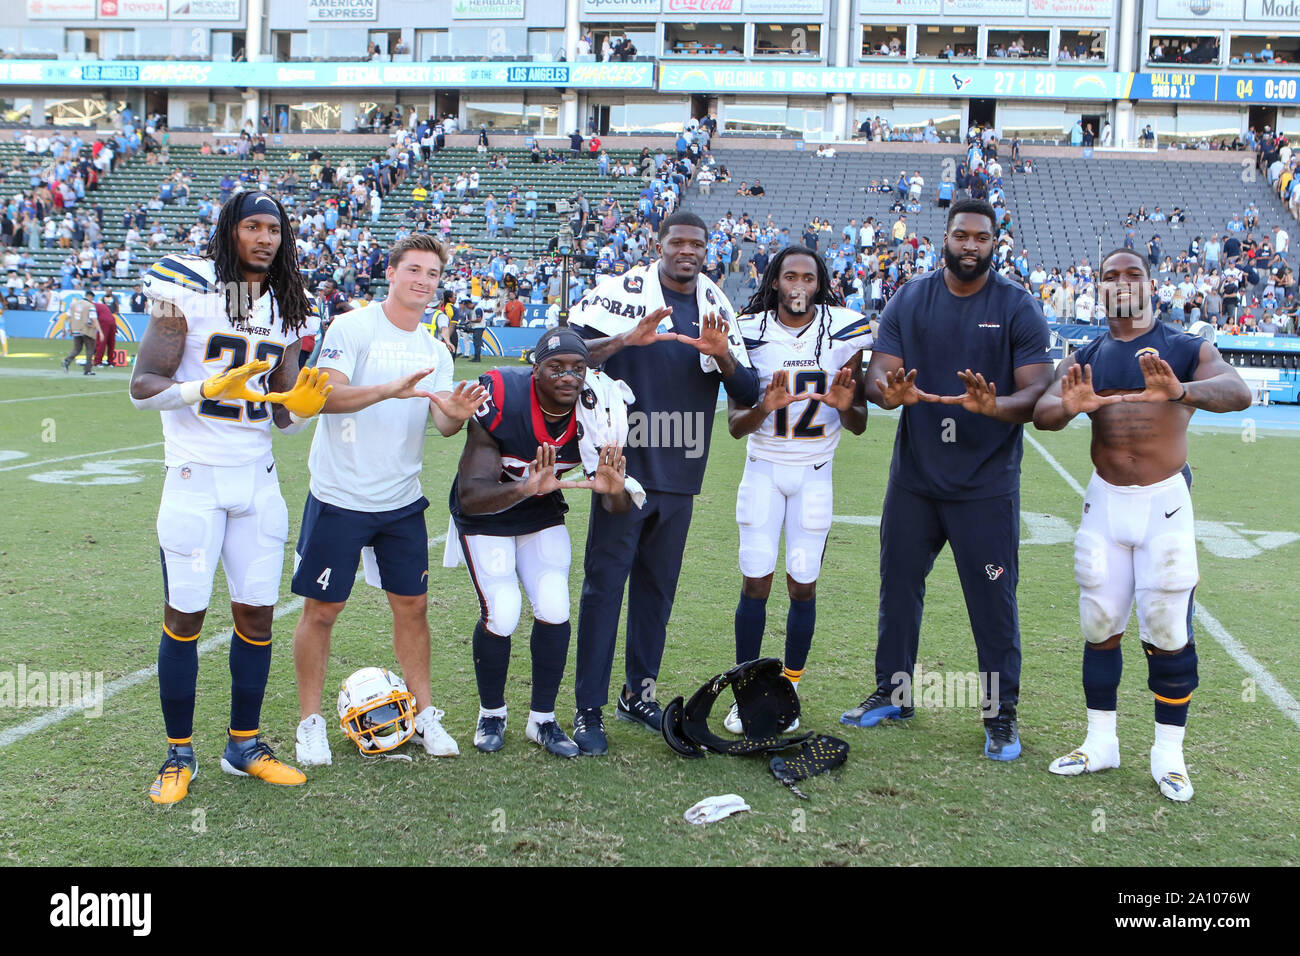 Carson Ca 22nd Sep 2019 The Former University Of Miami Players Los Angeles Chargers Defensive Back Rayshawn Jenkins 23 Los Angeles Chargers Kicker Mike Badgley 4 Houston Texans Running Back Duke Johnson